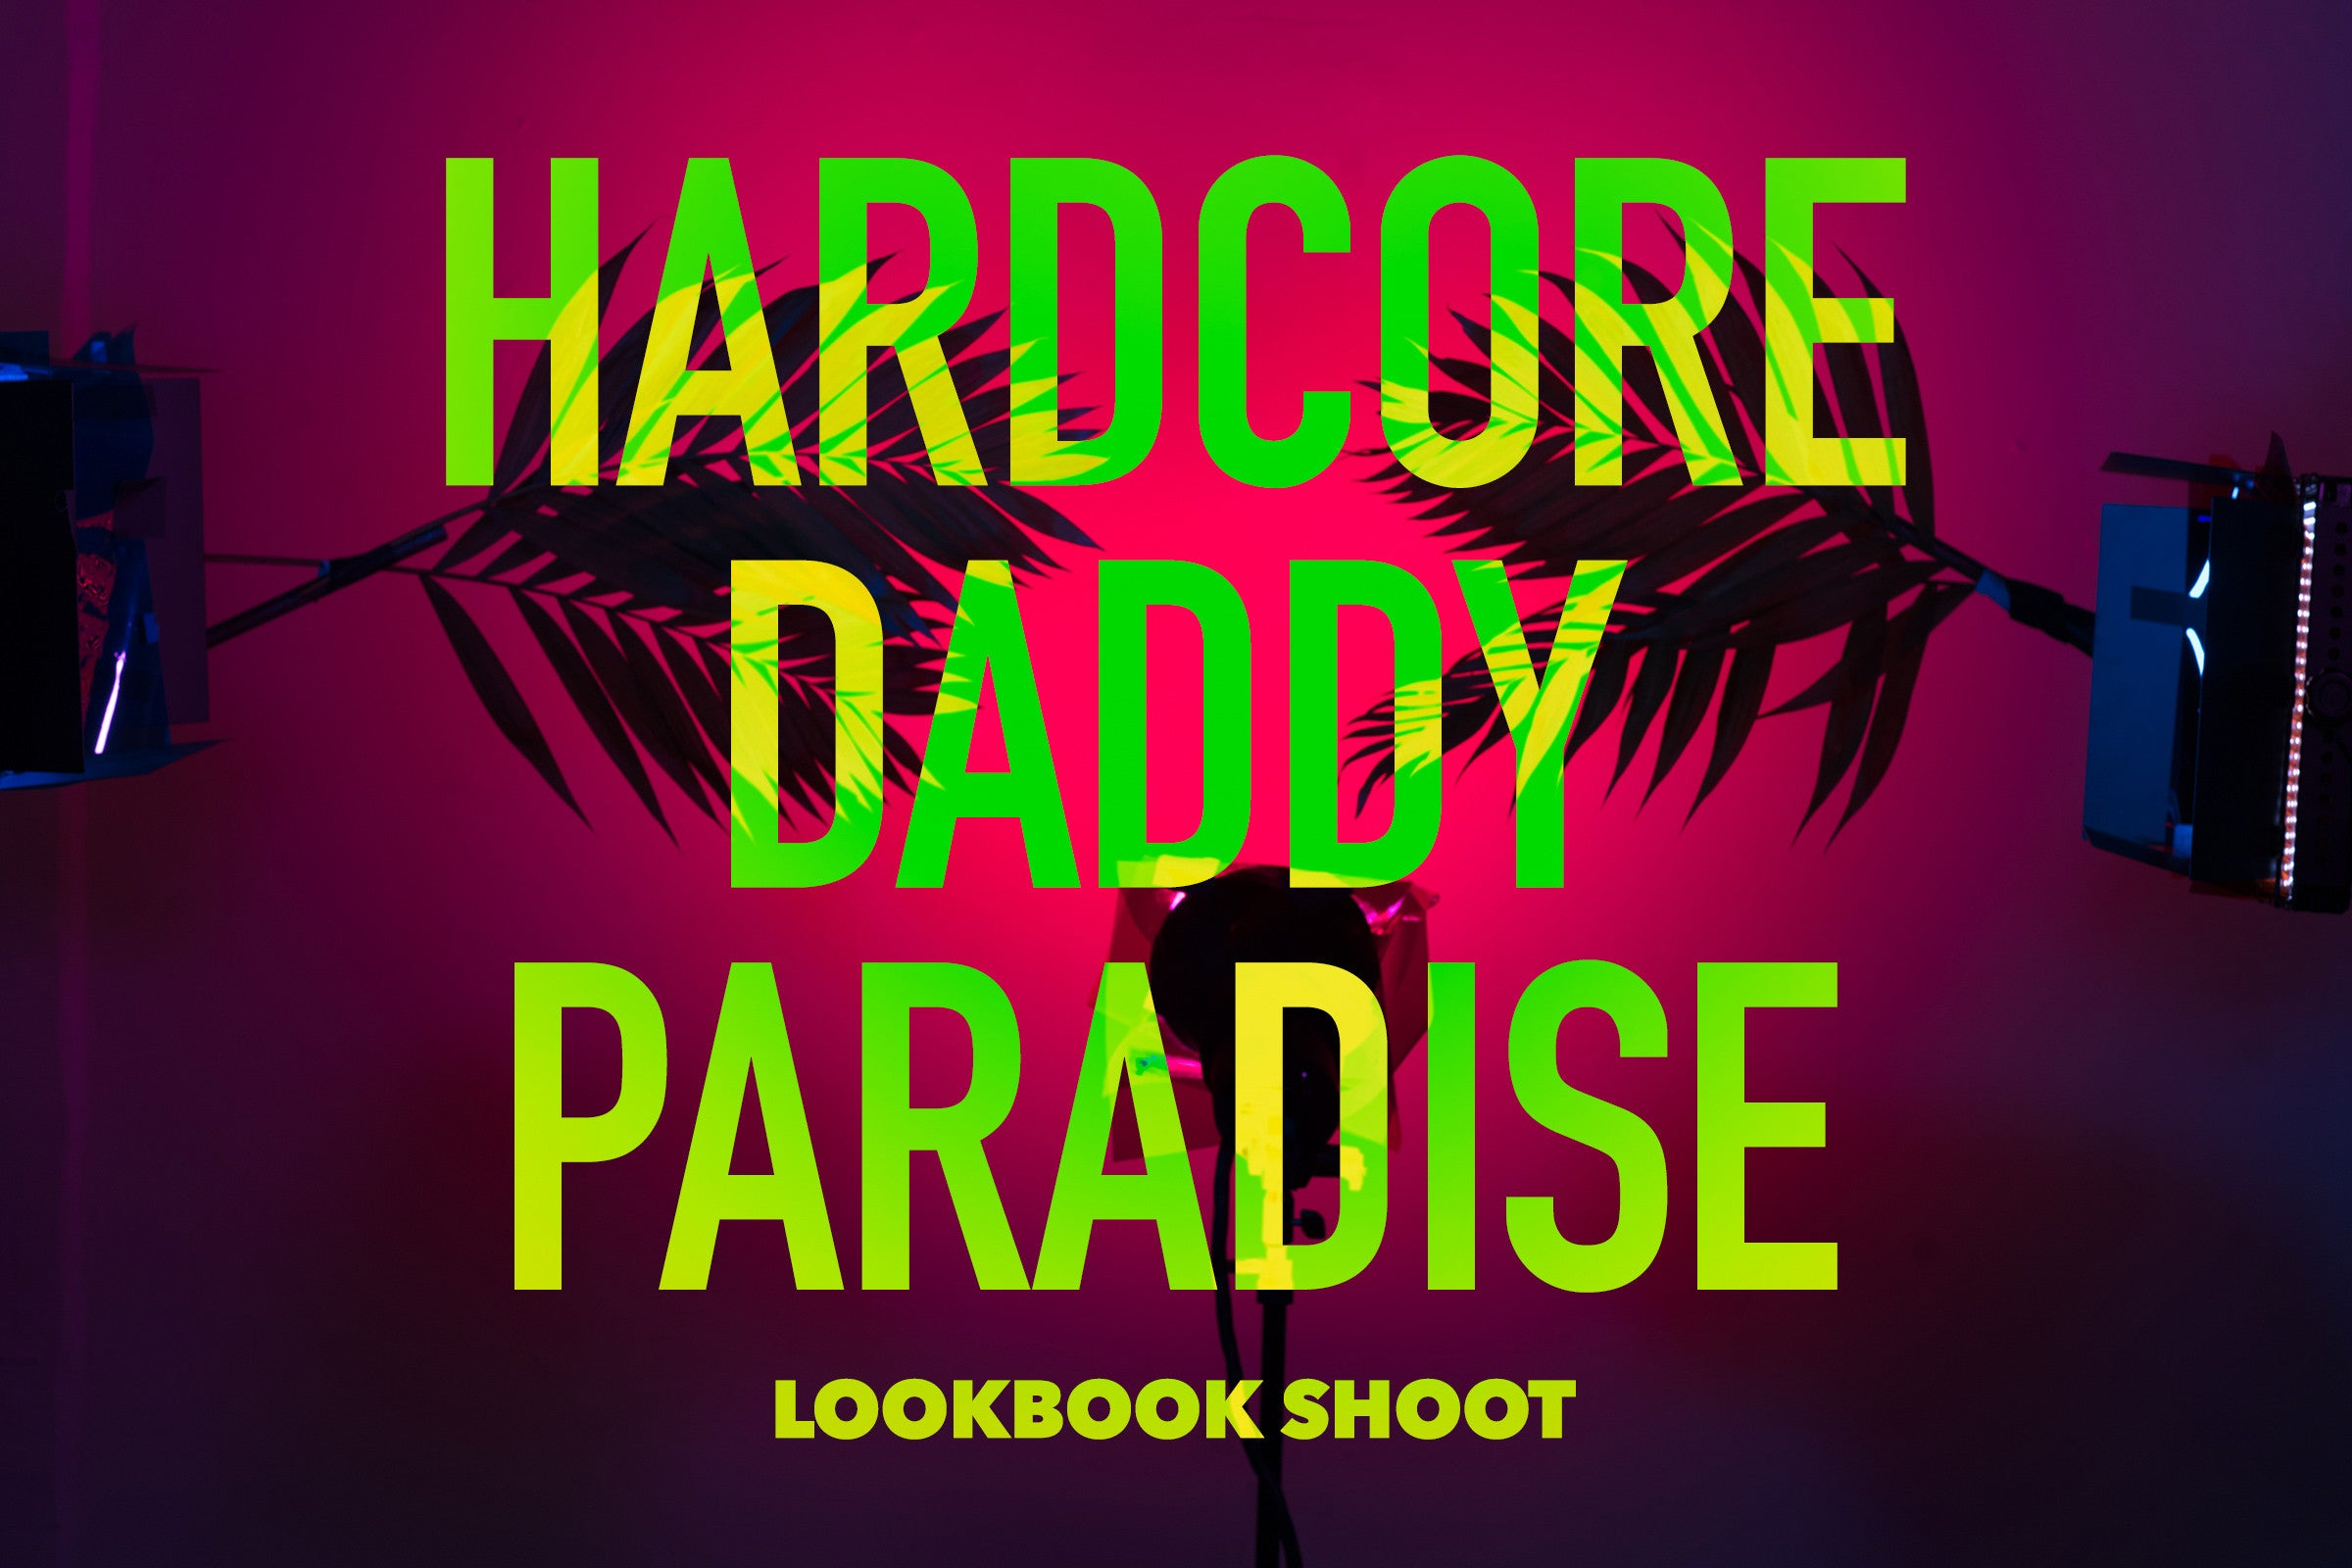 Hardcore Daddy Paradise Lookbook Shoot